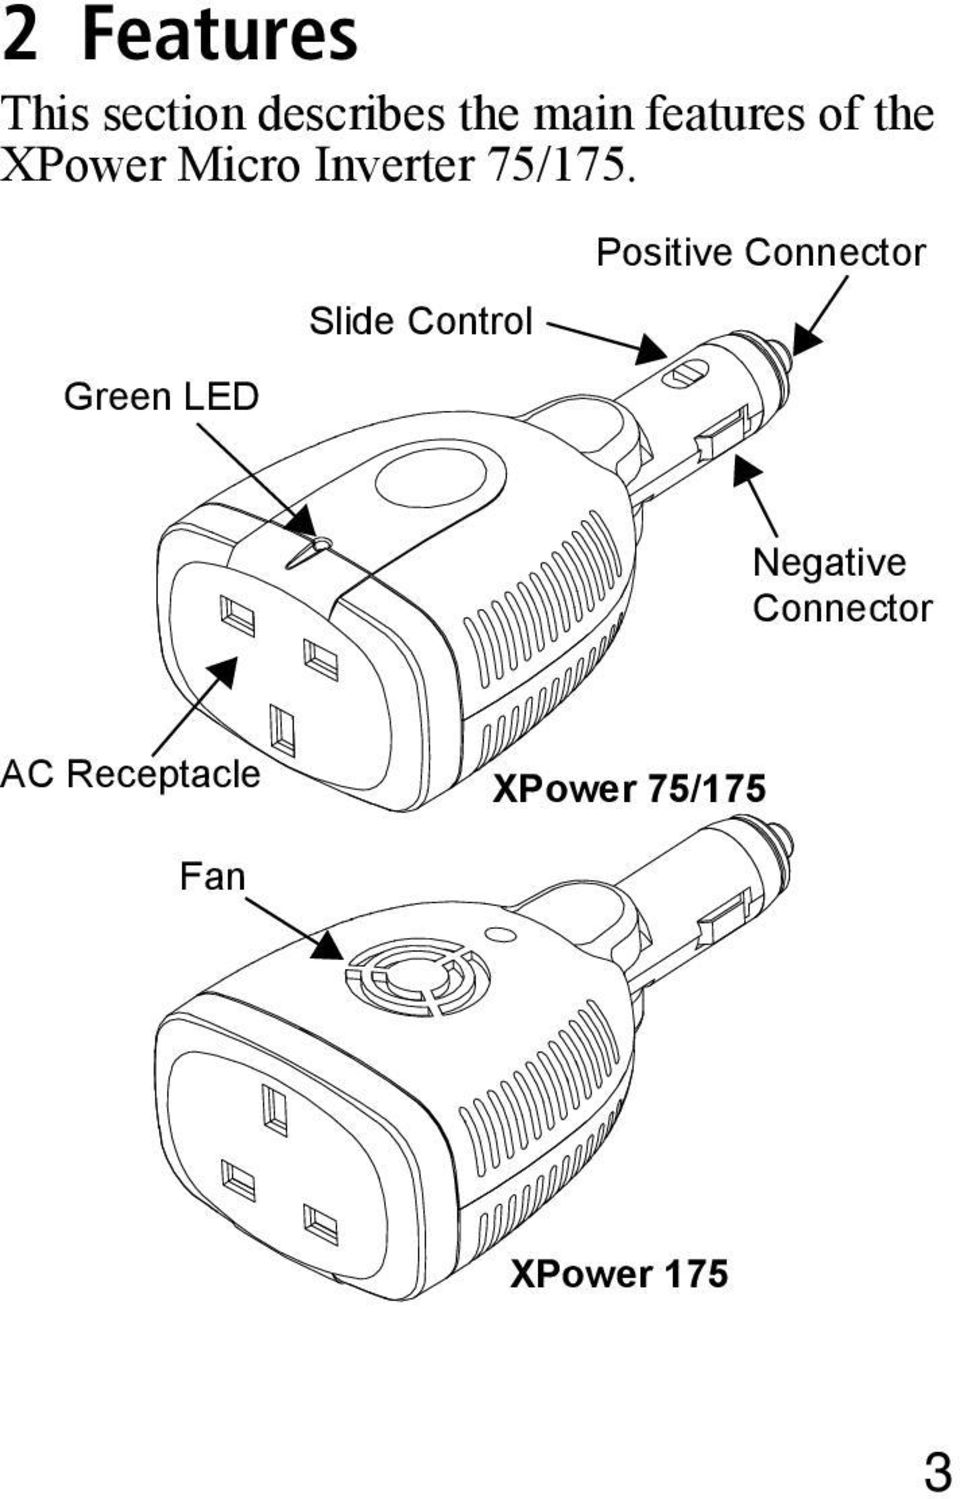 Green LED Slide Control Positive Connector